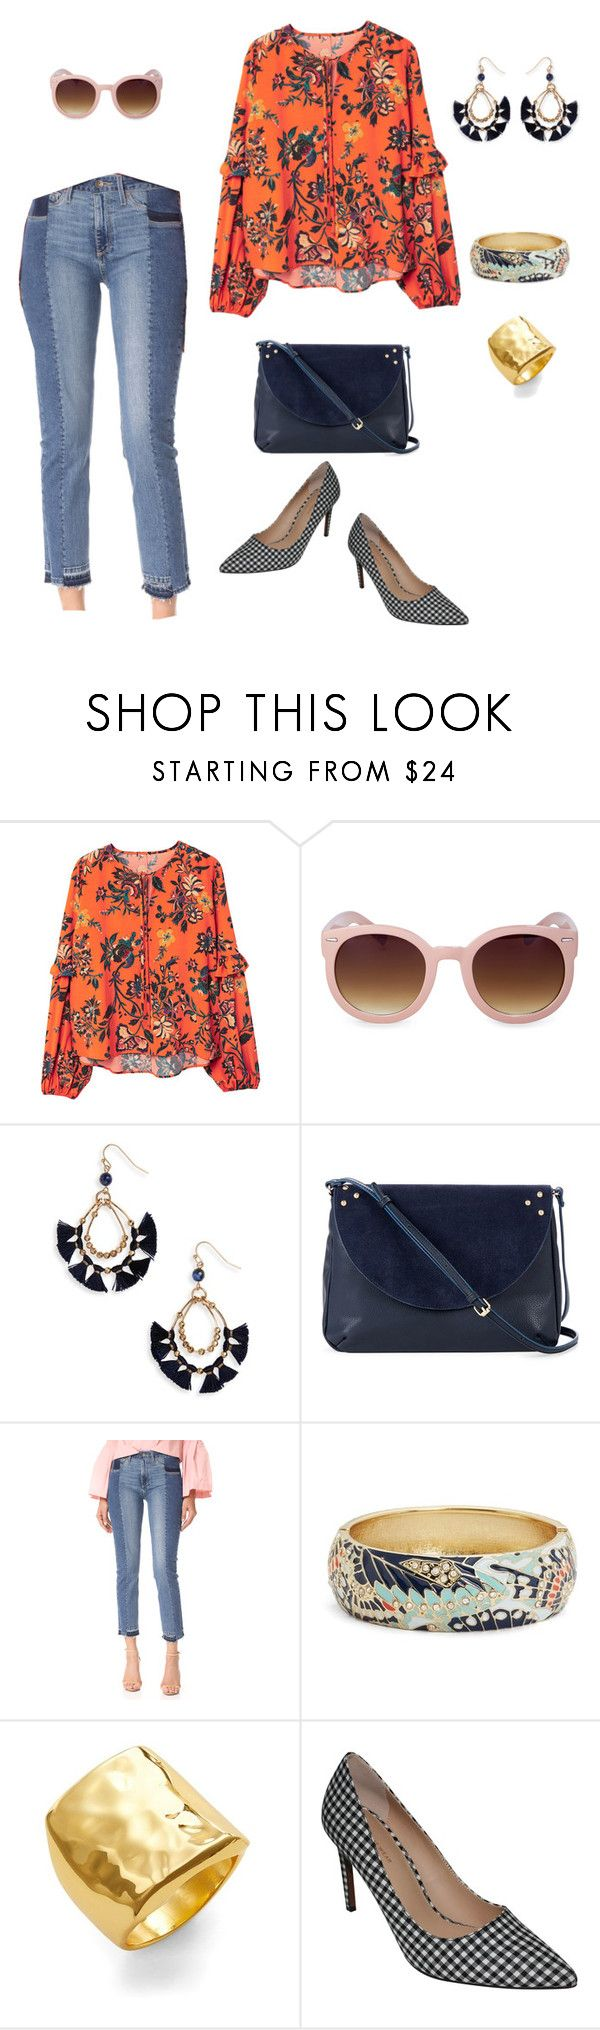 """""""Fall '17 Trends"""" by amandacastro83 on Polyvore featuring MANGO, Panacea, Sole Society, Paige Denim, Sequin and Argento Vivo"""